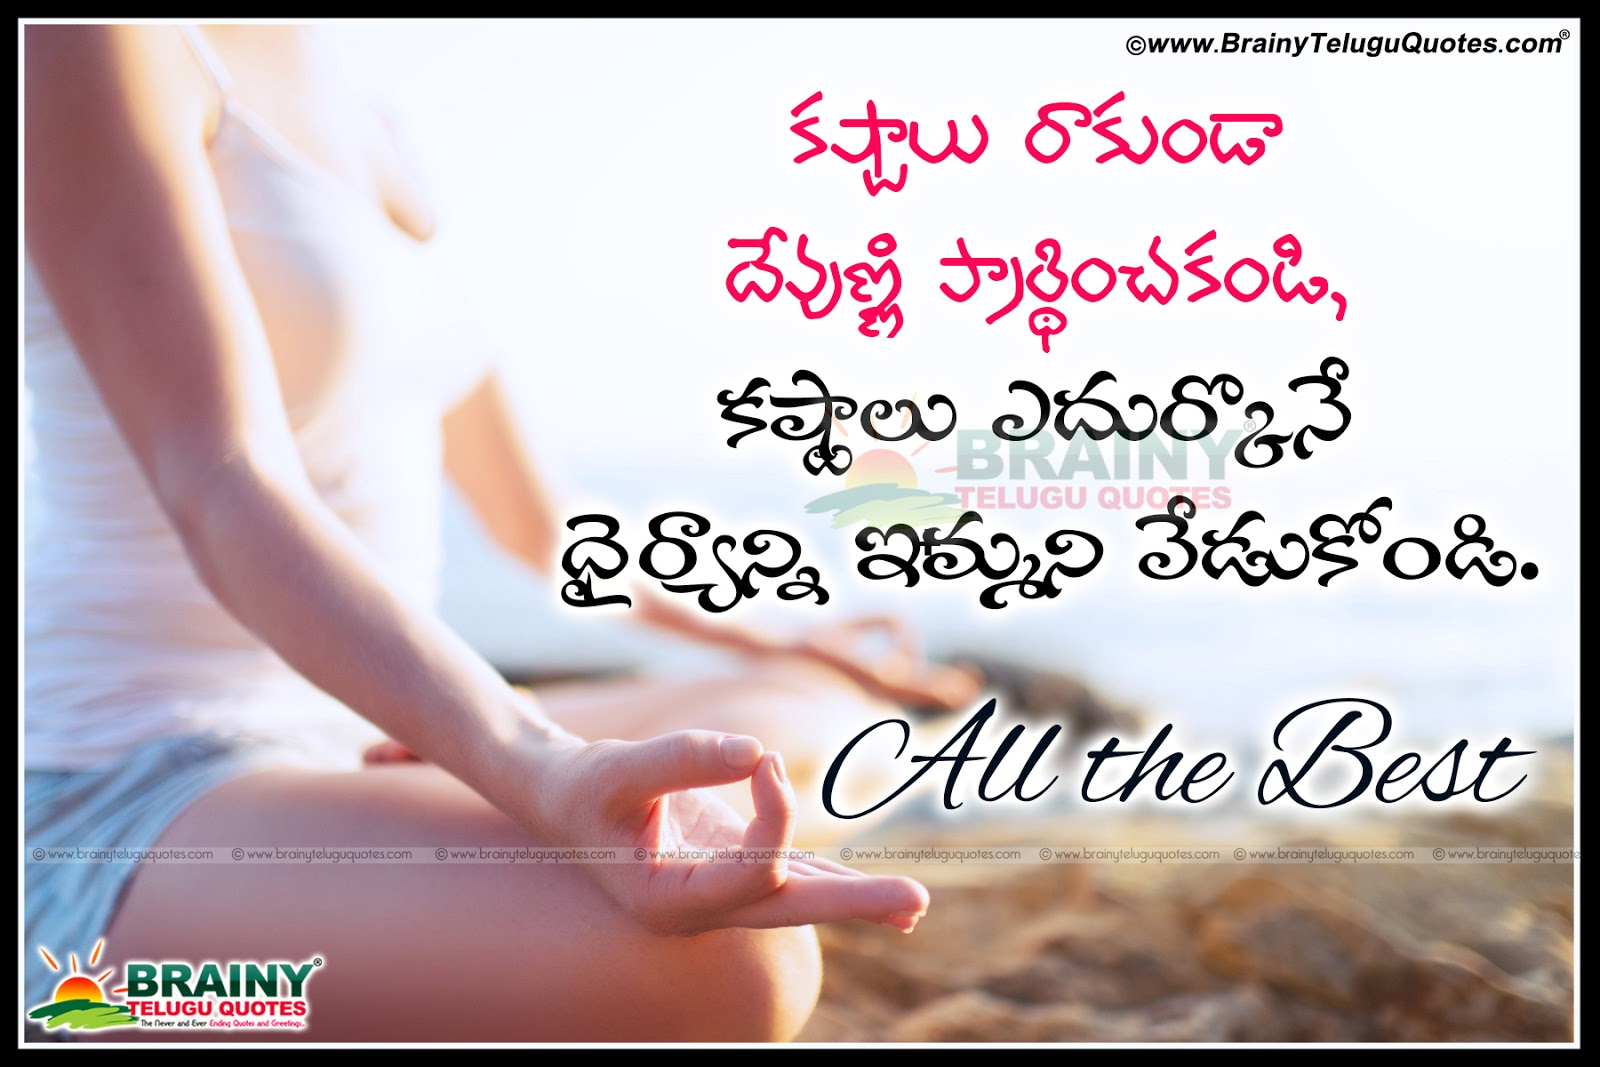 Best Life Quotes Life Success And Failure Inspirational Telugu All The Best Life